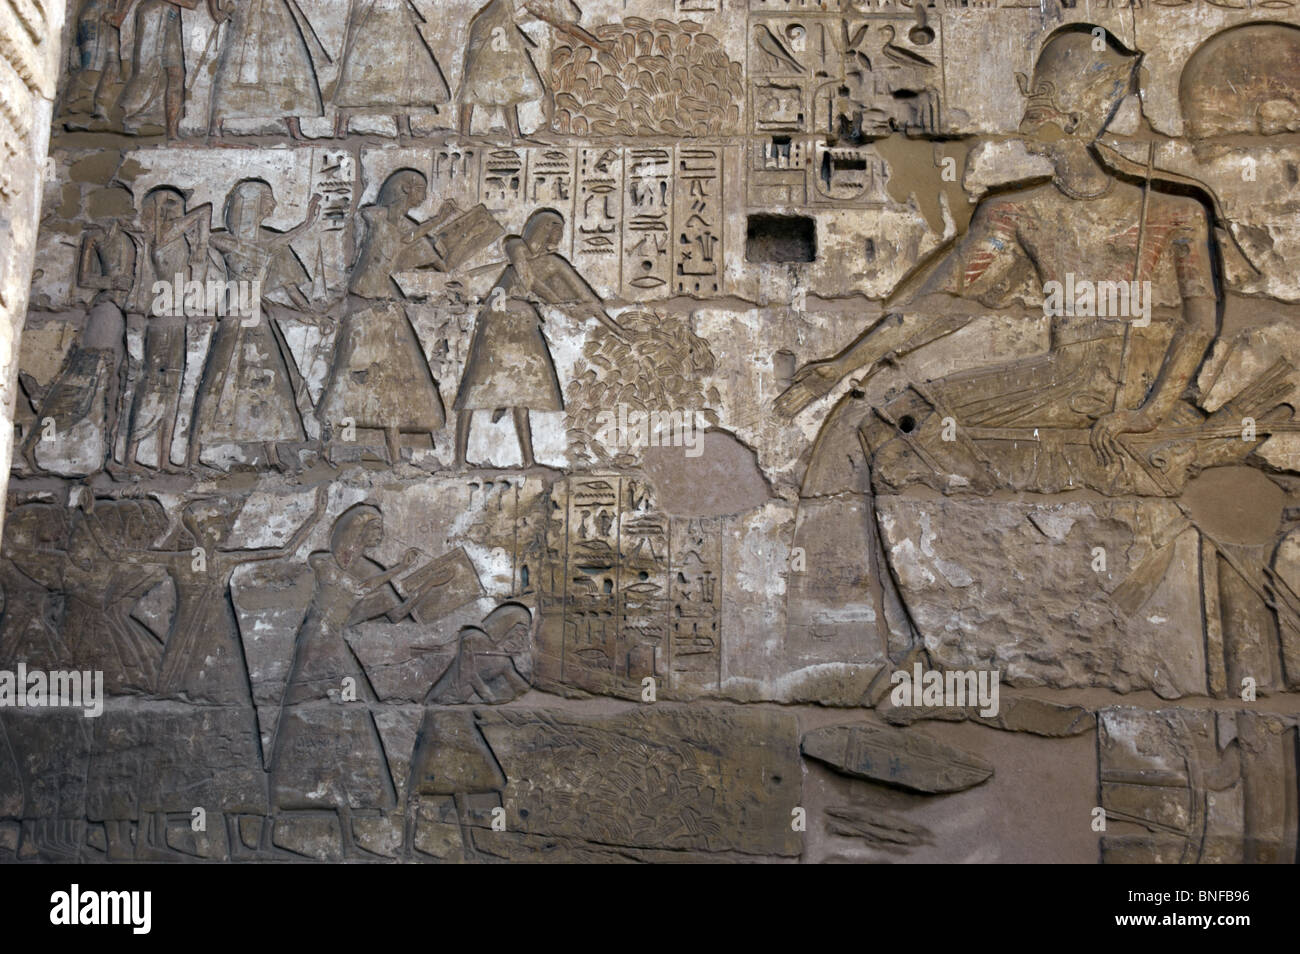 Temple of Ramses III. Officials before Ramses III counting the hands of enemies killed in action to know the enemy - Stock Image